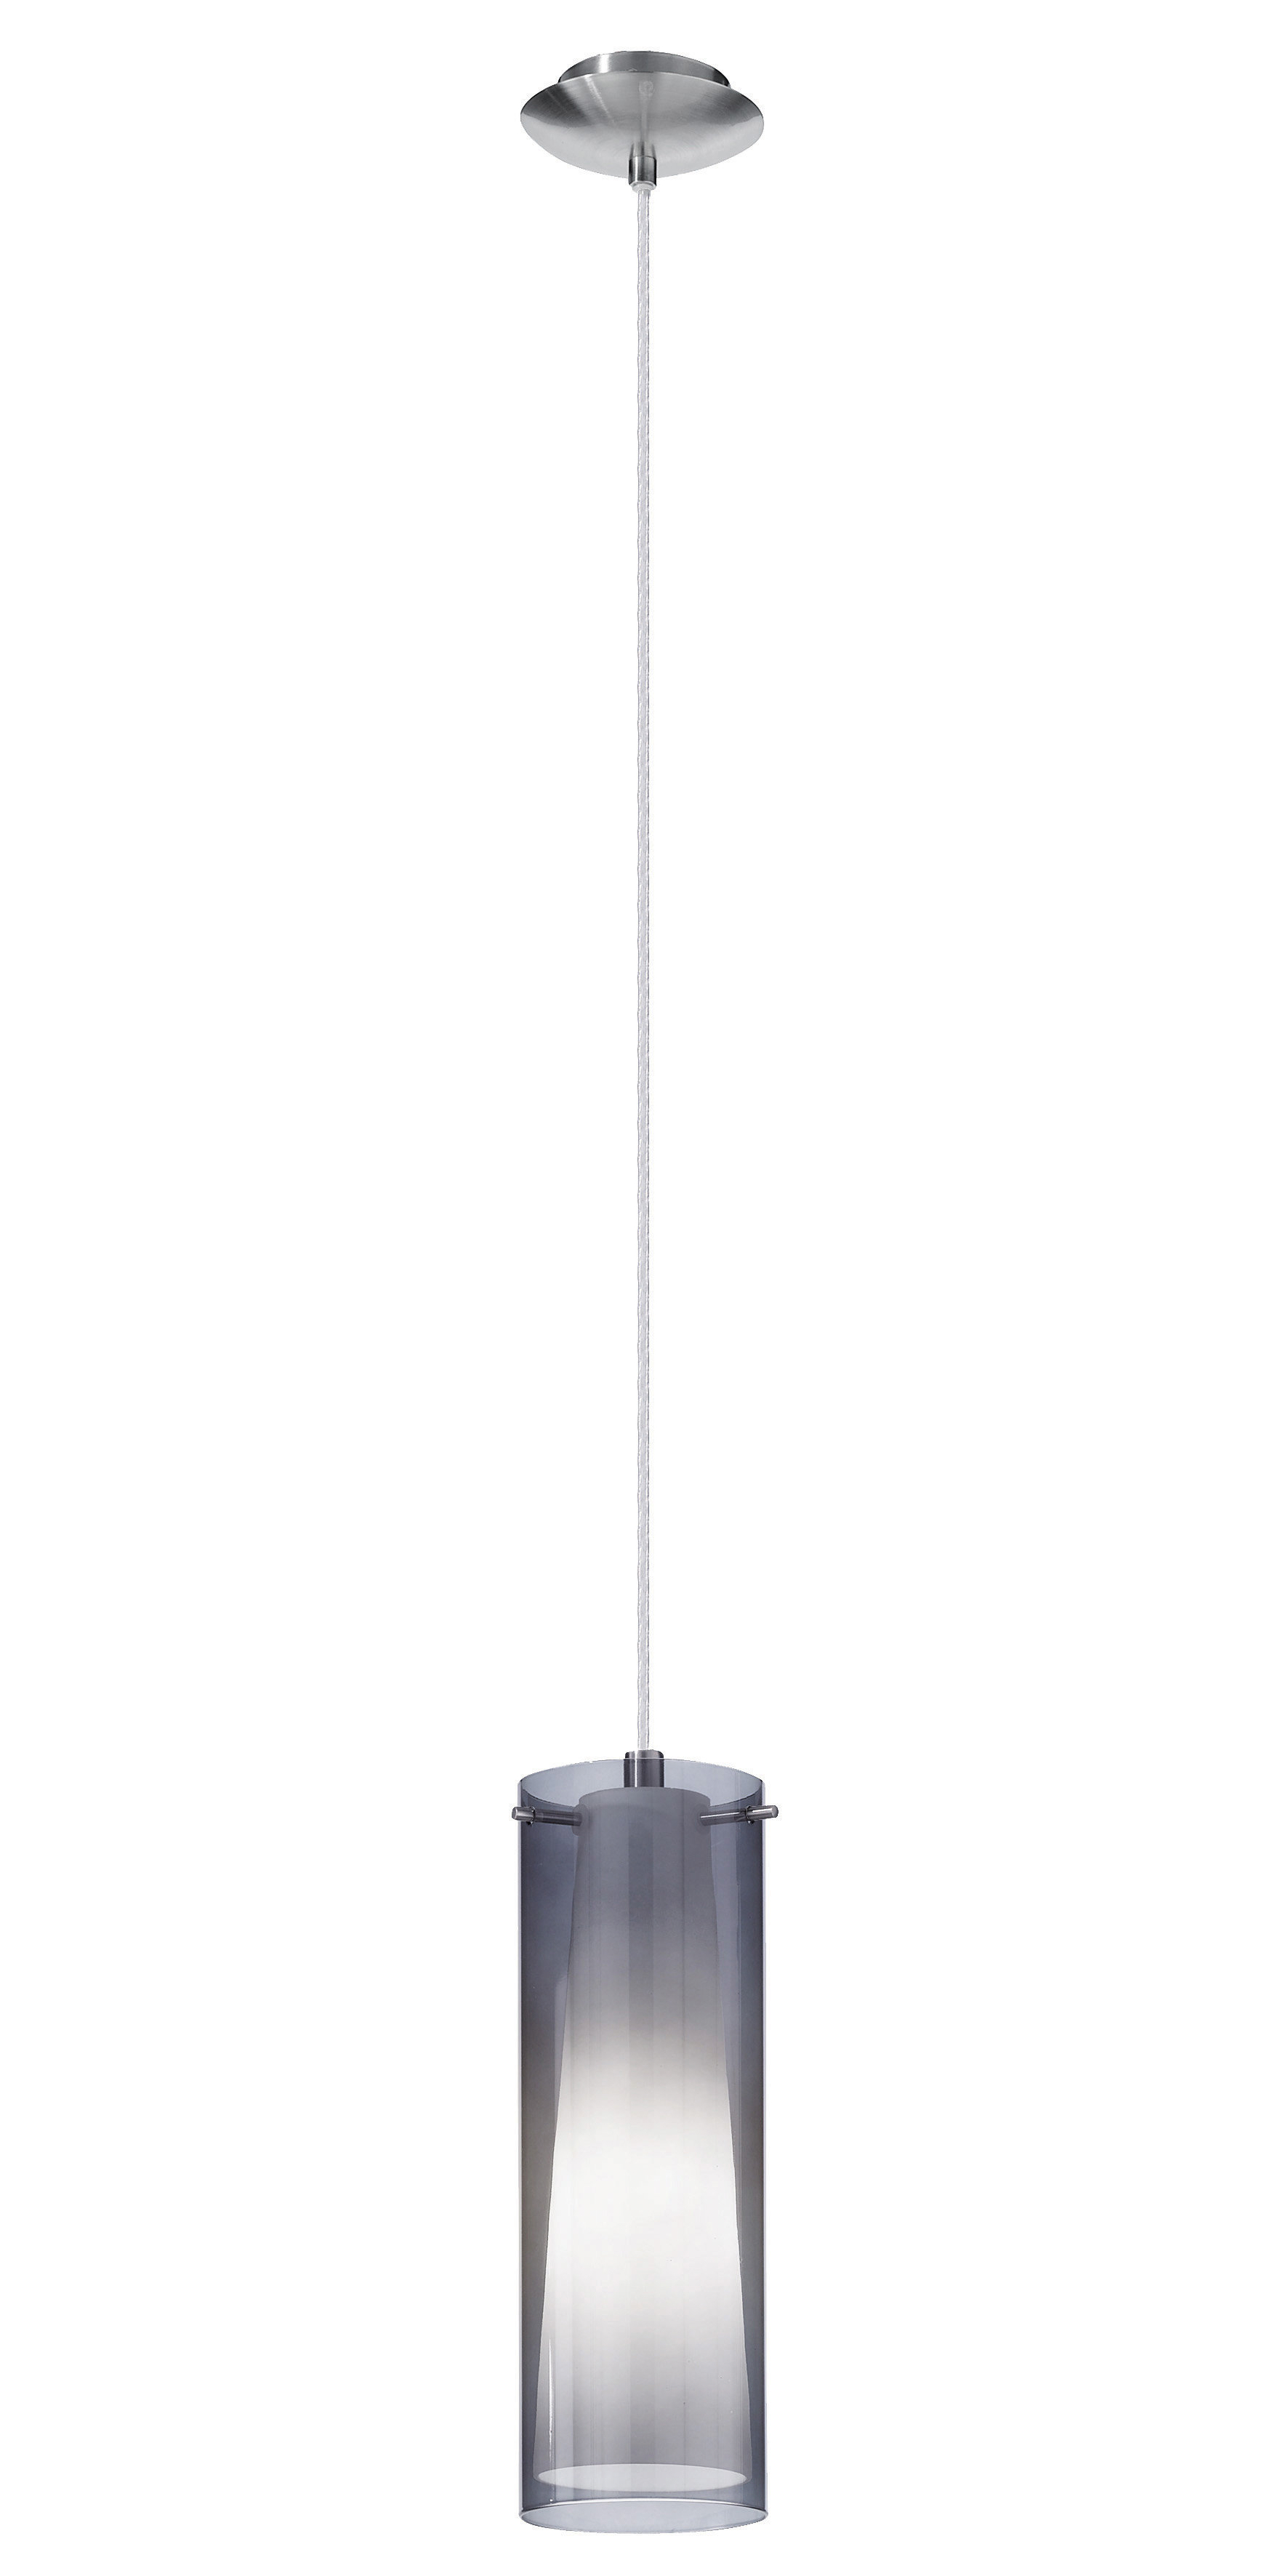 Brayden Studio Julia 1 Light Single Cylinder Pendant Intended For Current Oldbury 1 Light Single Cylinder Pendants (View 4 of 25)